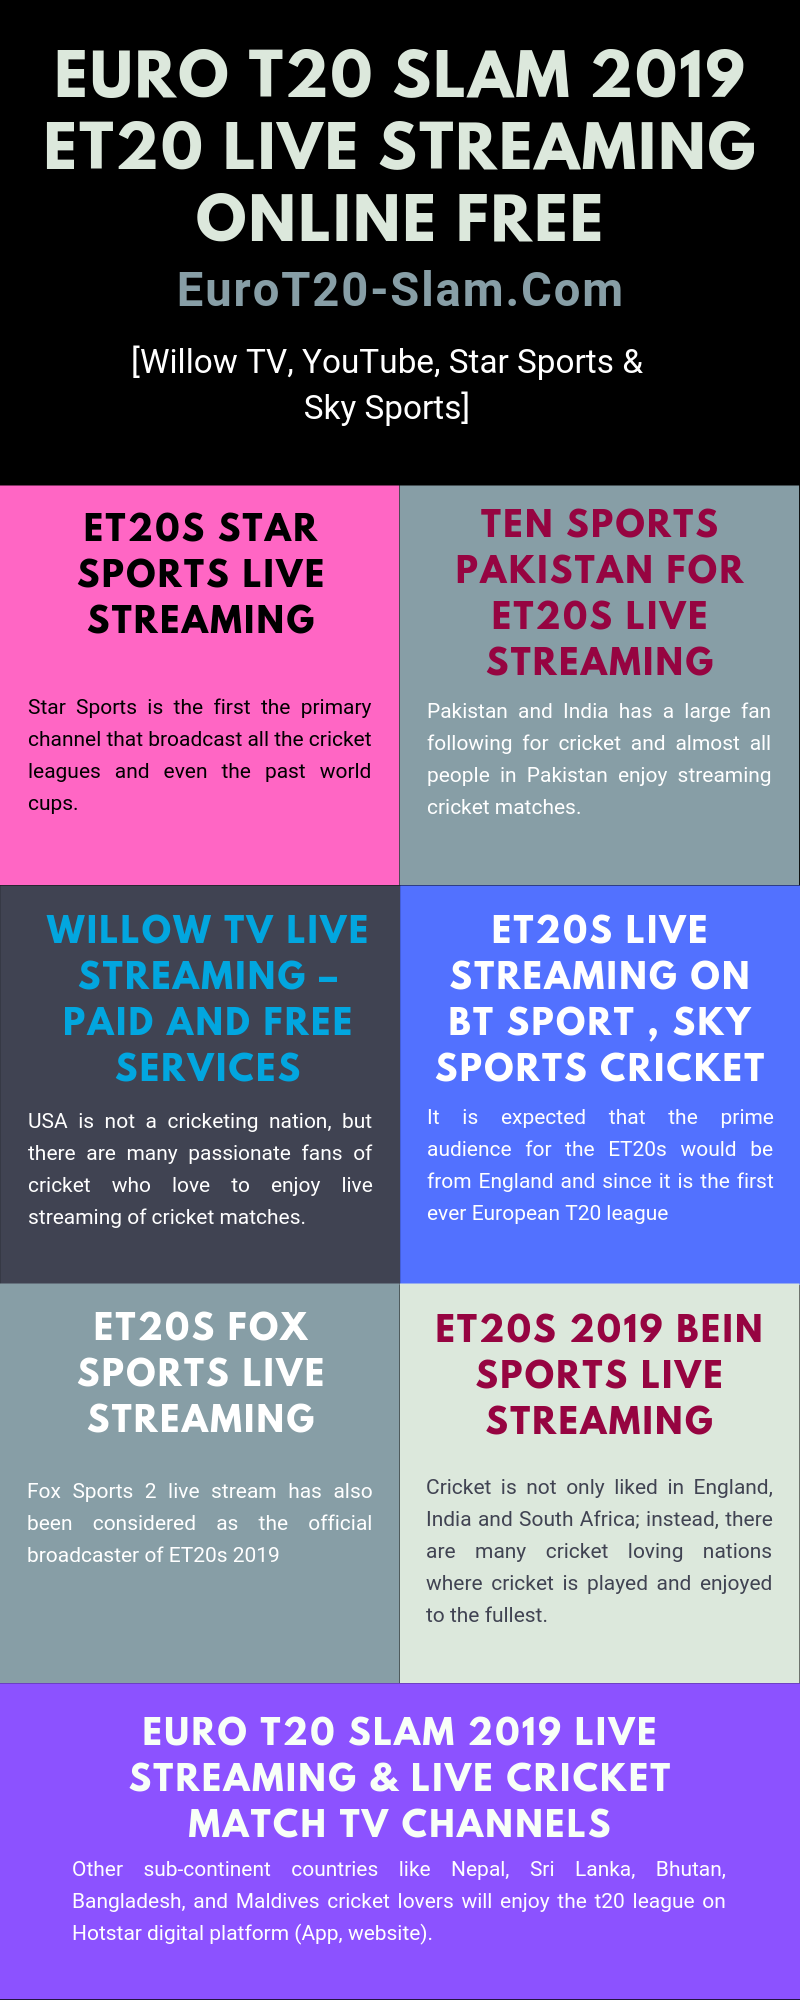 Euro T20 Slam 2019 eT20 Live Streaming Online Free [Willow TV, YouTube, Star Sports & Sky Sports]